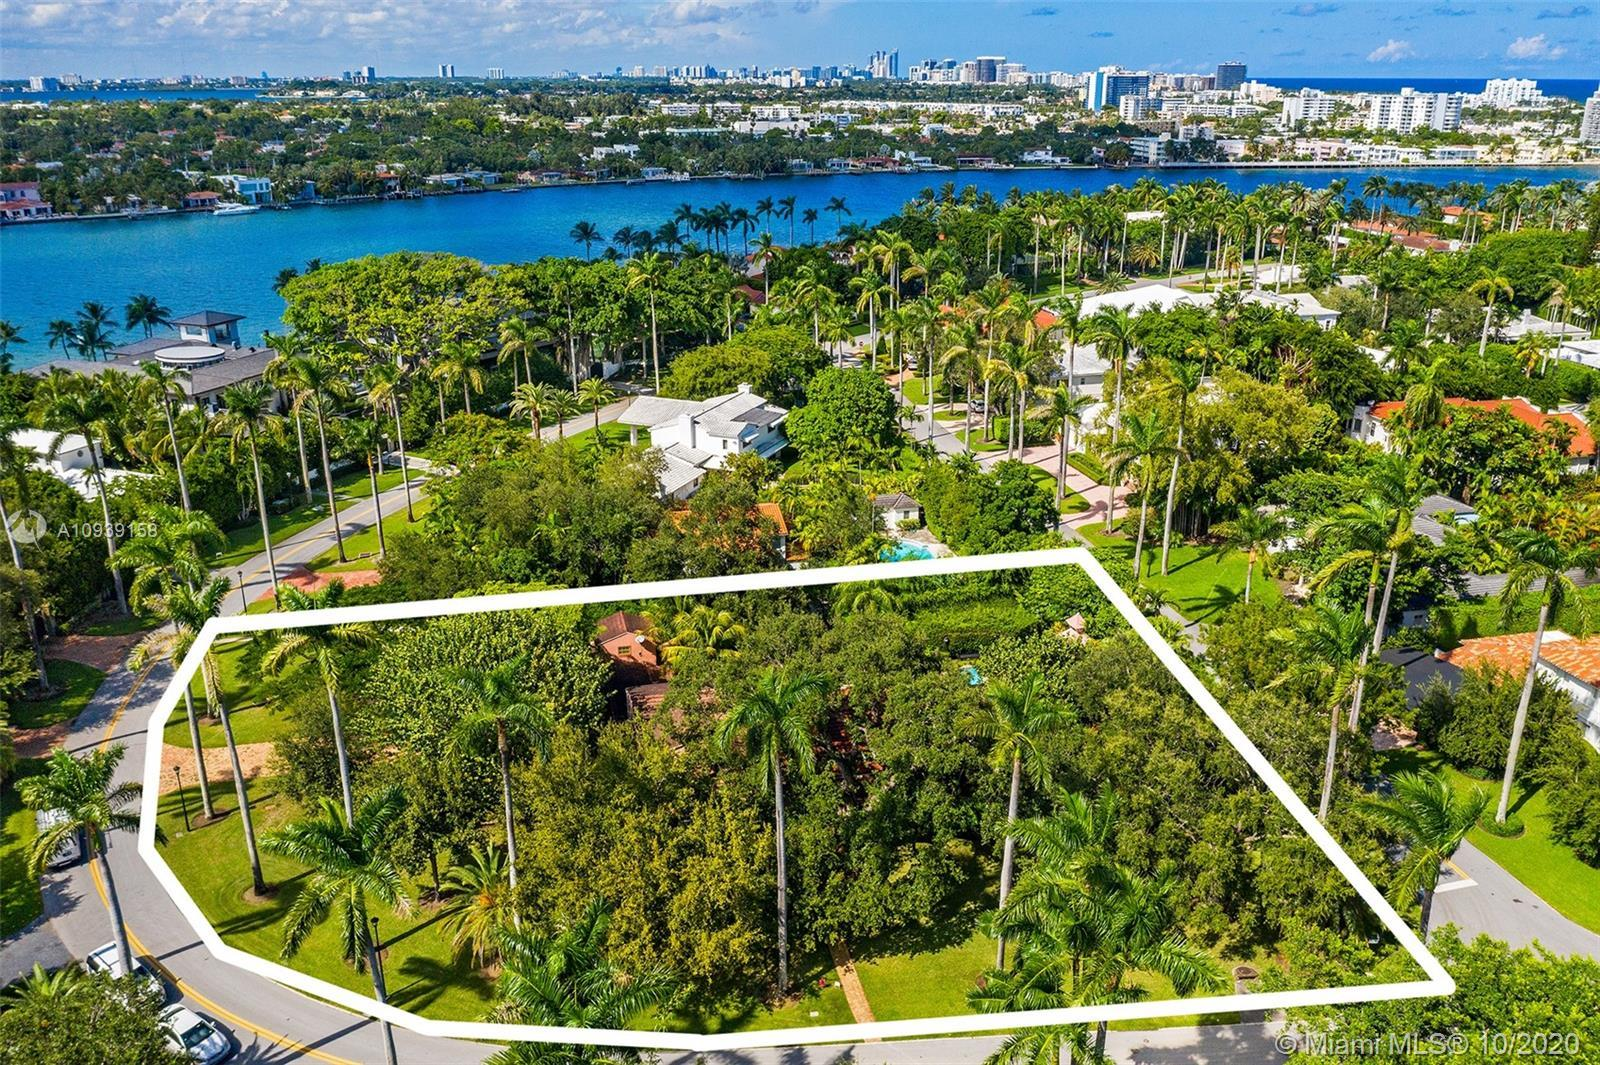 Once-in-a-lifetime opportunity to own this oversized corner lot on one of Miami's most coveted, priv